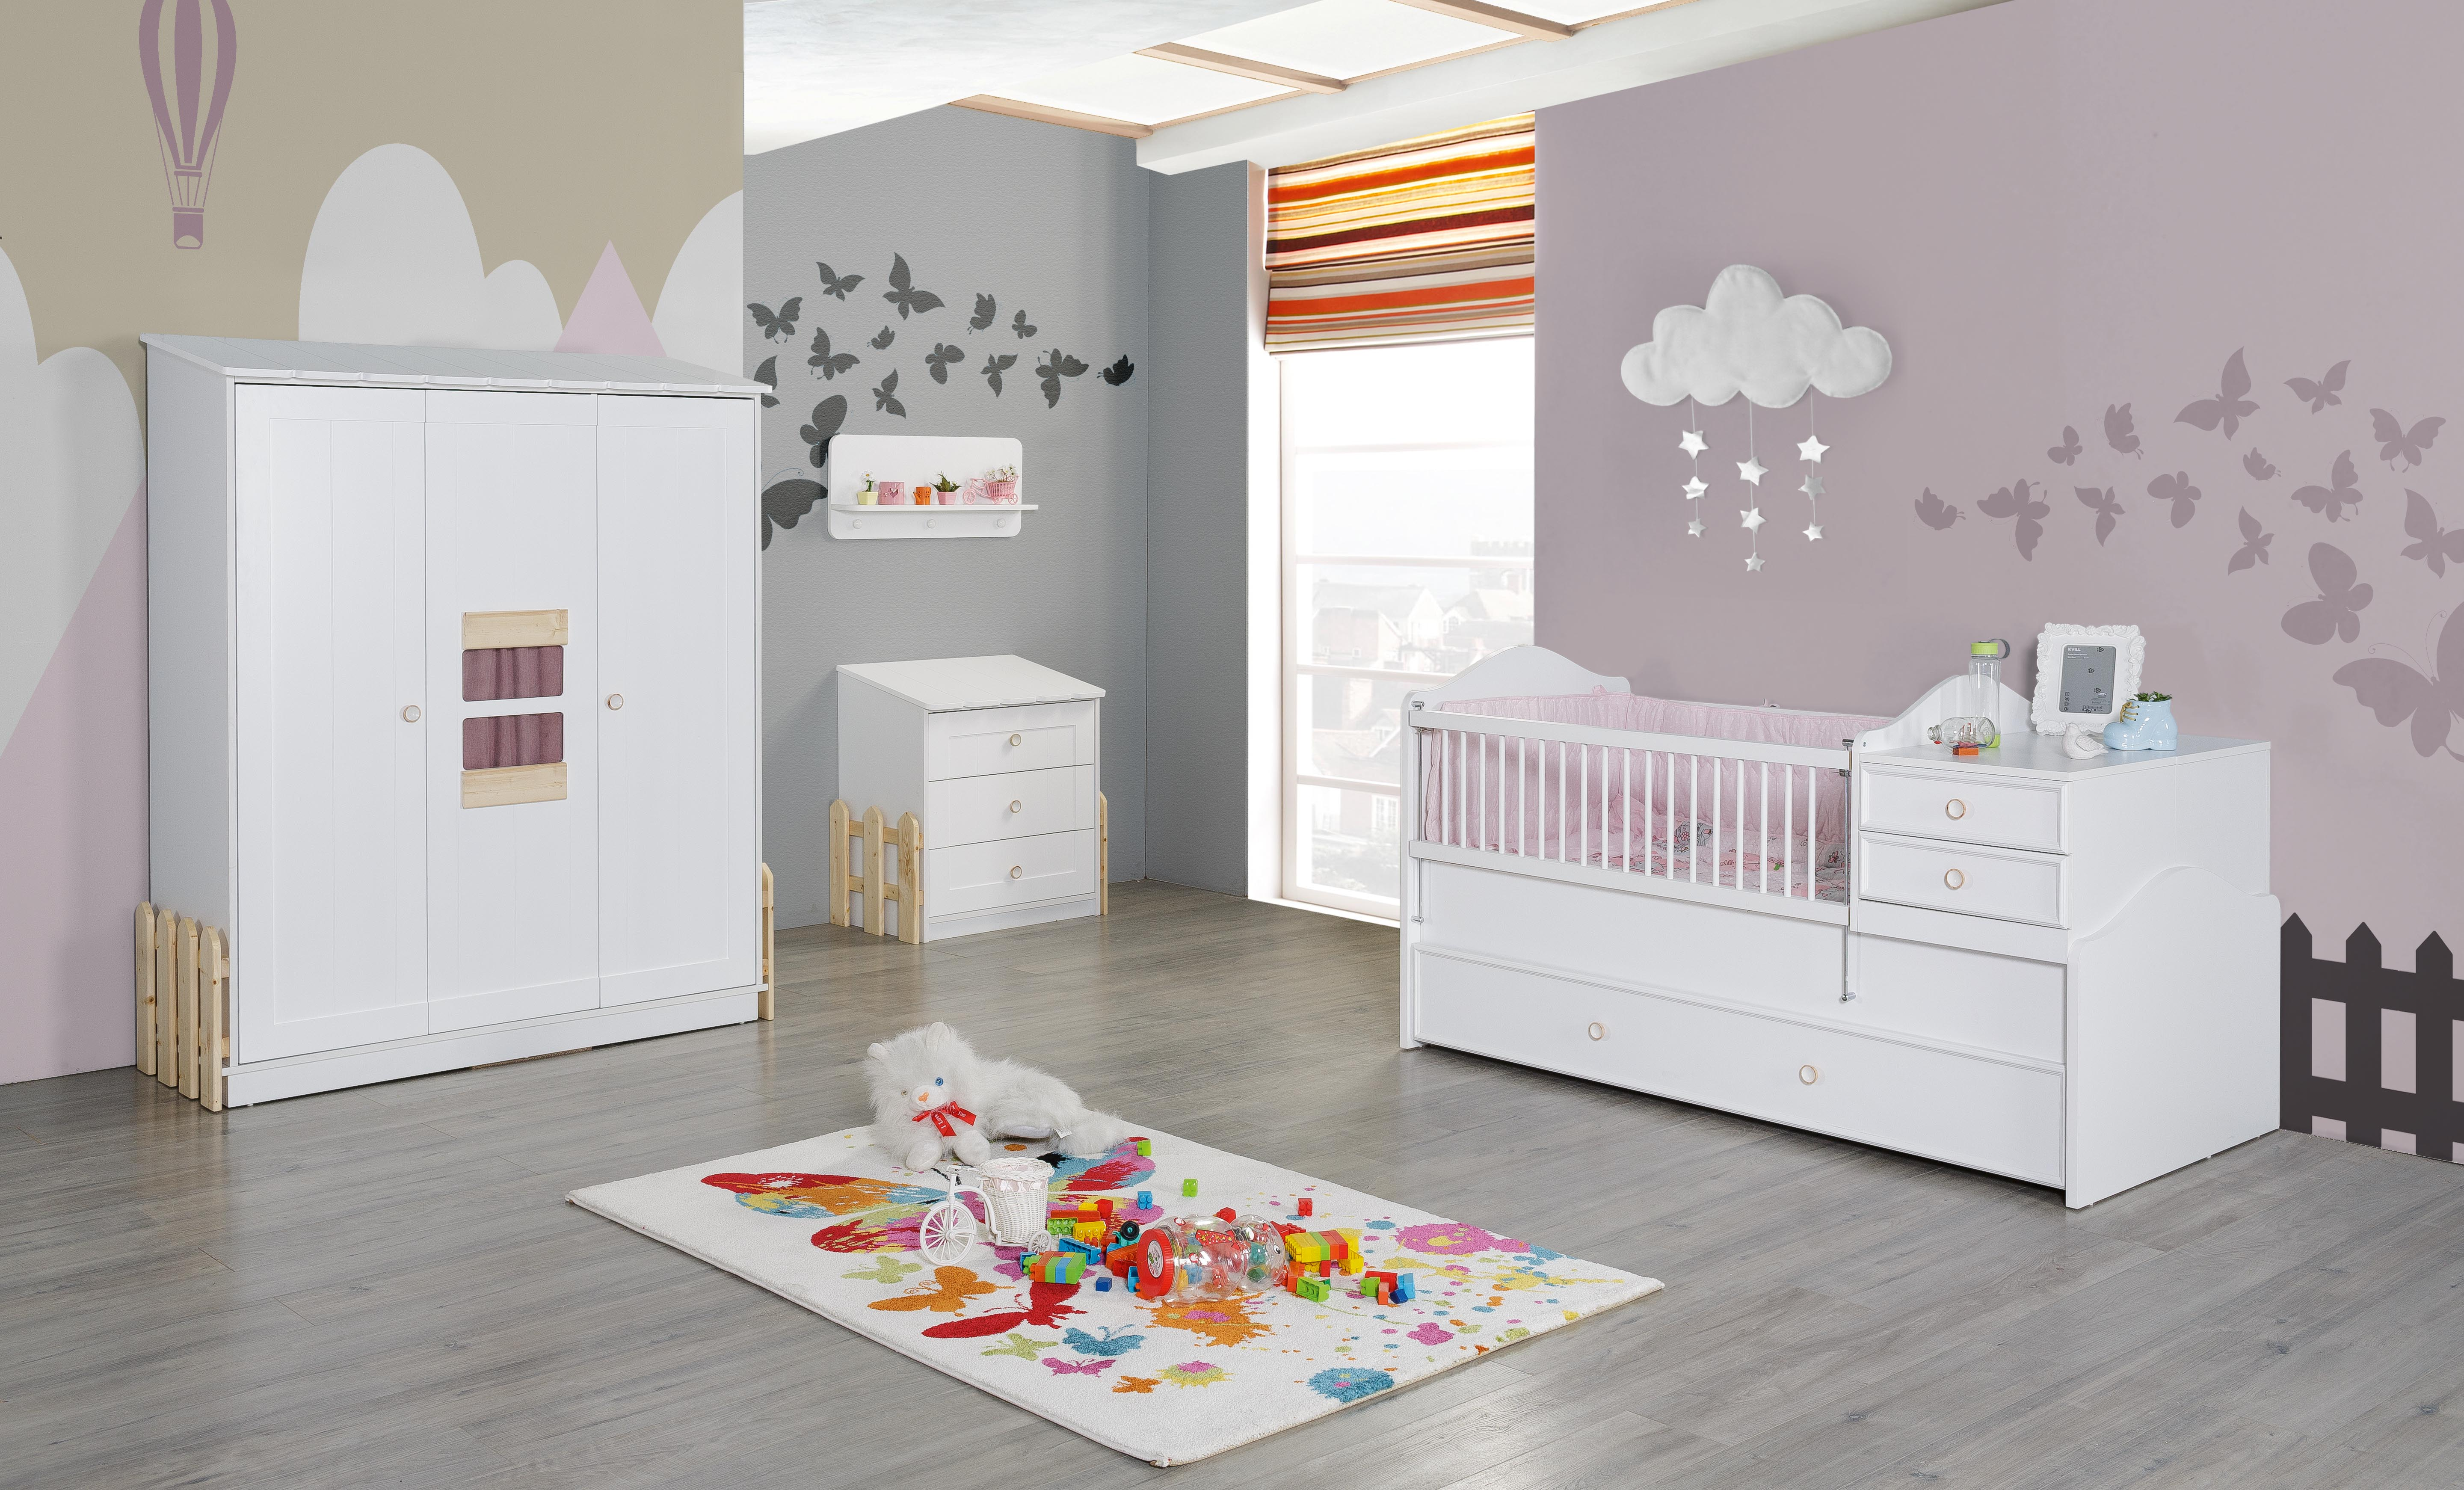 Sweet Home Baby Room Set S Furniture Luxury Living Sets Kids Young Product On Alibaba